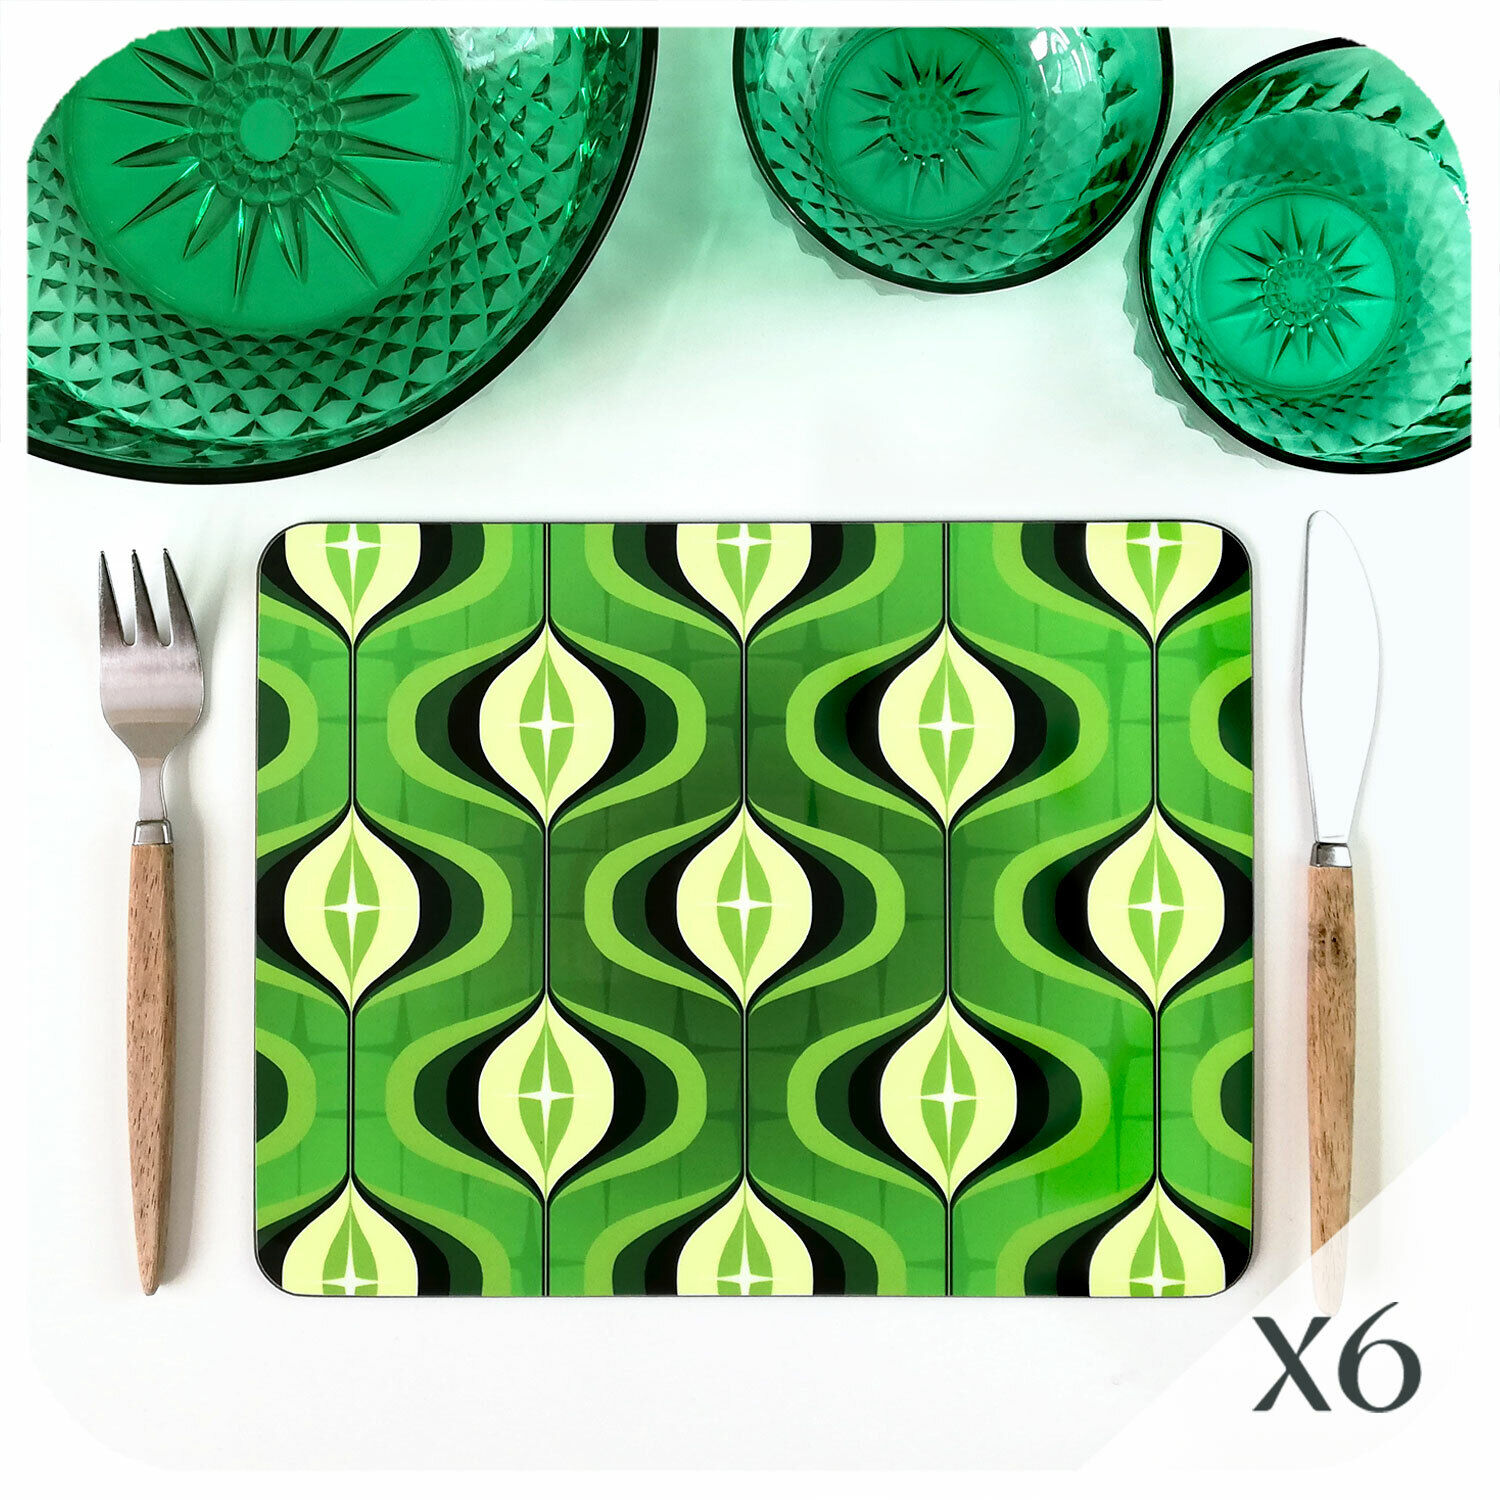 70s Op Art Grün Placemats set of 6, Retro Placemats, 70s home decor, 70s kitsch